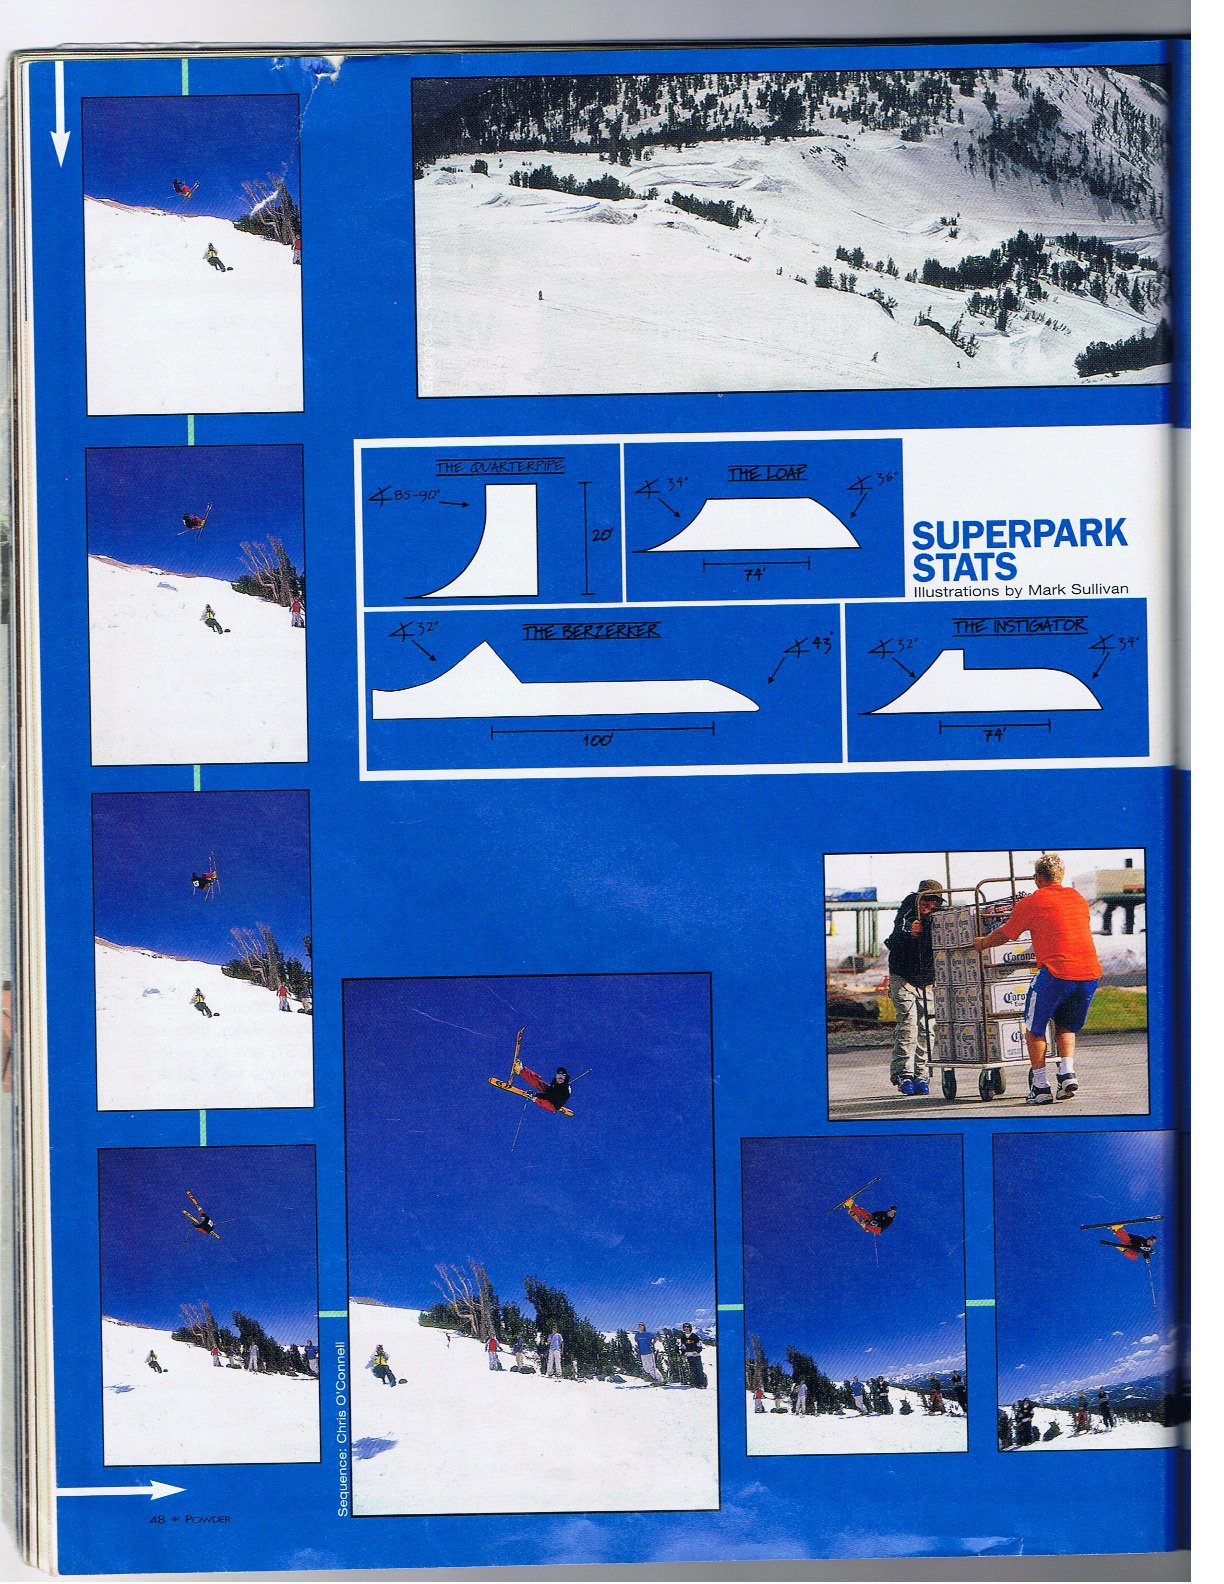 Superpark 1 article - page 3